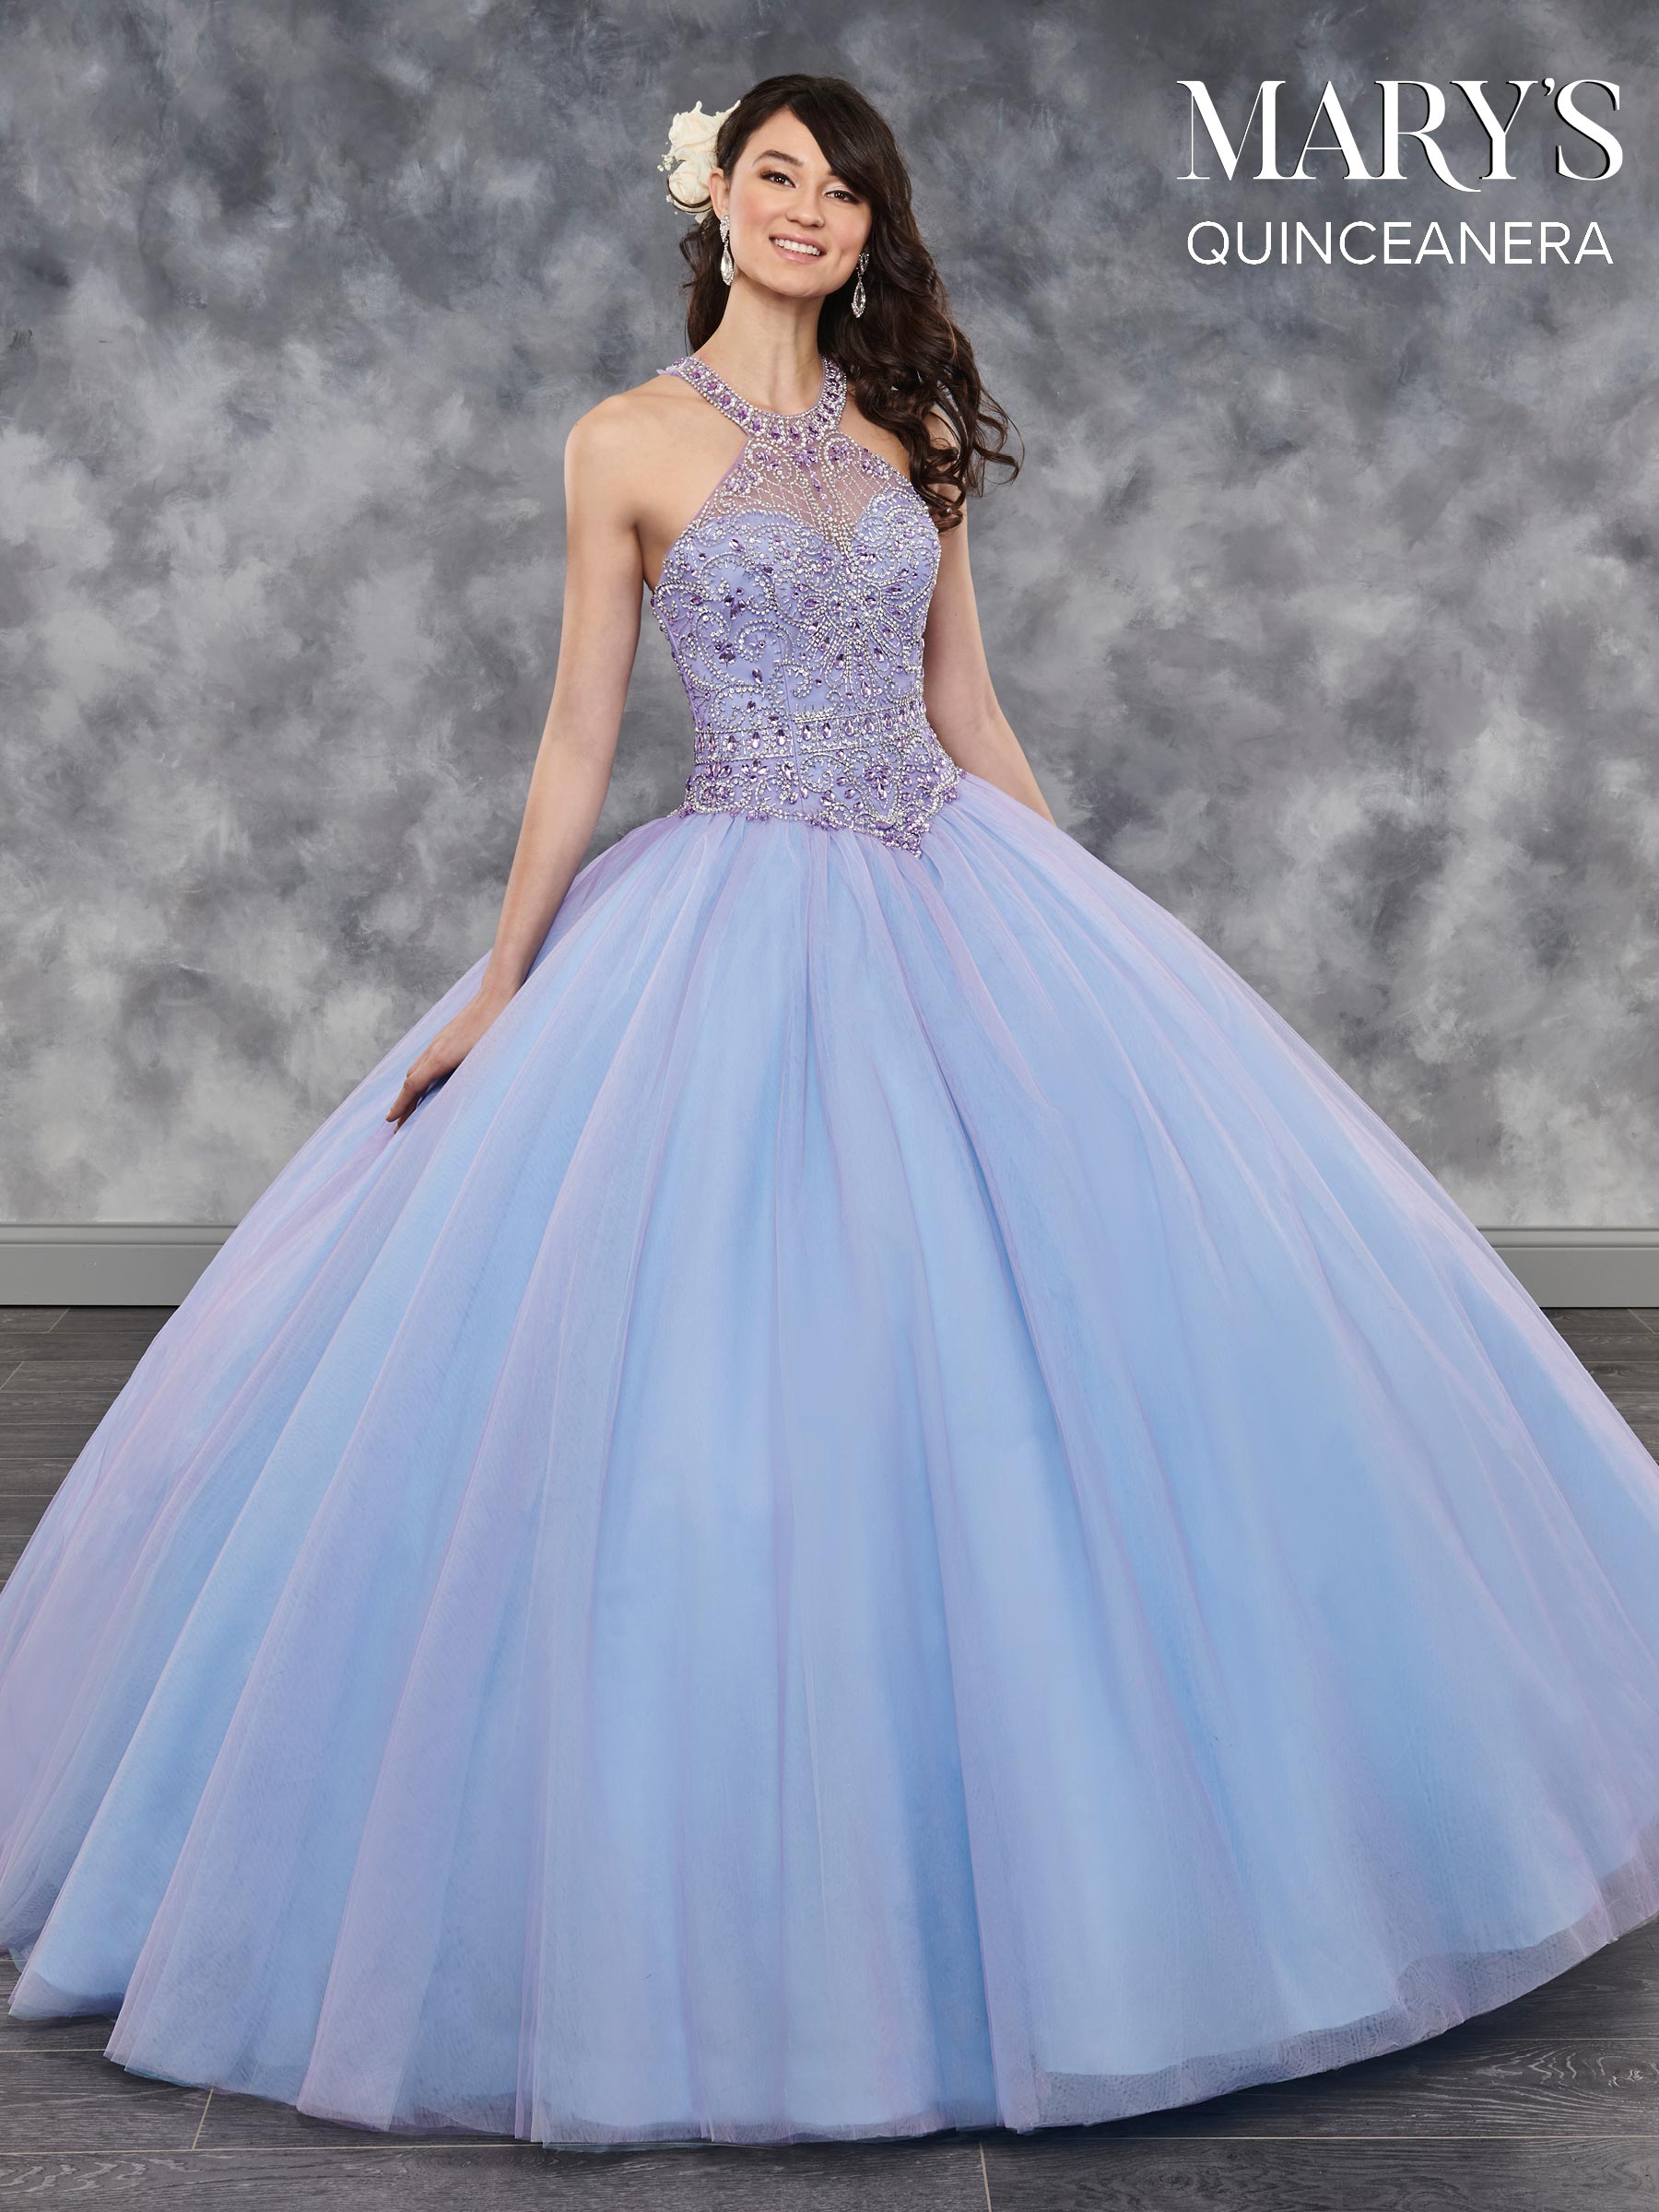 Marys Quinceanera Dresses | Mary's Quinceanera | Style - MQ1022